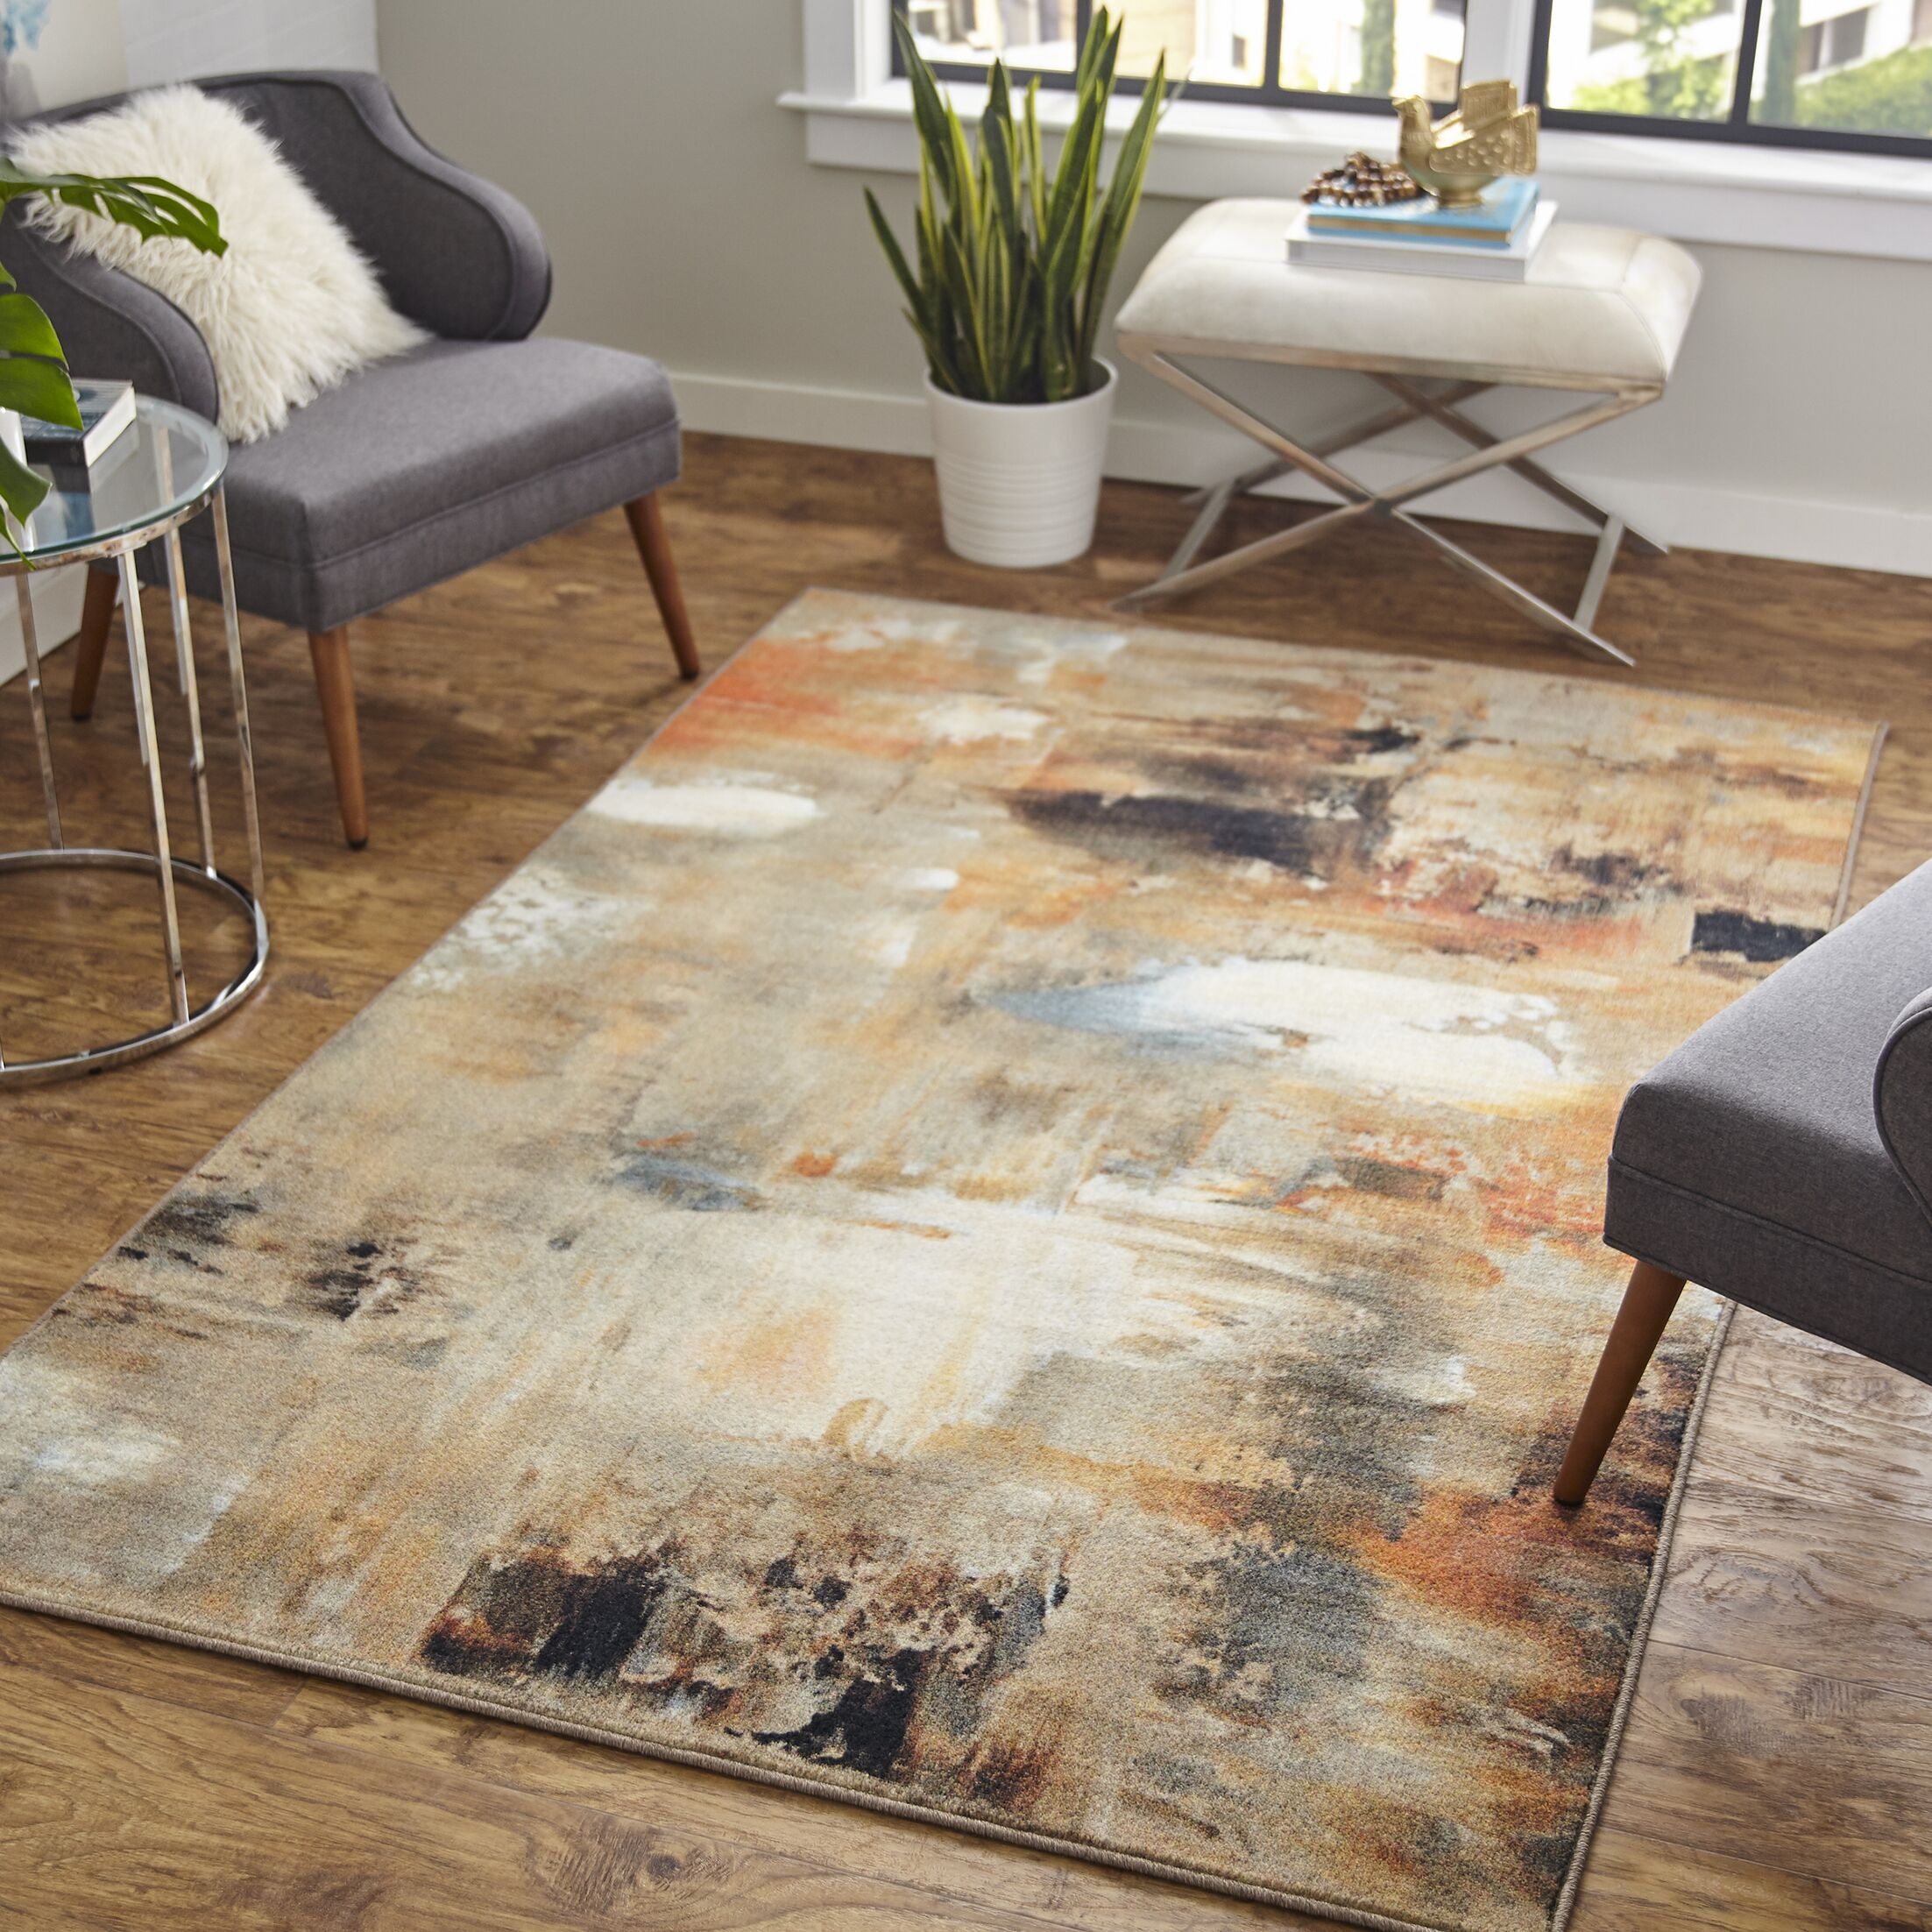 Hallberg Canvas Brown/Beige Area Rug Rug Size: Rectangle 5' x 8'